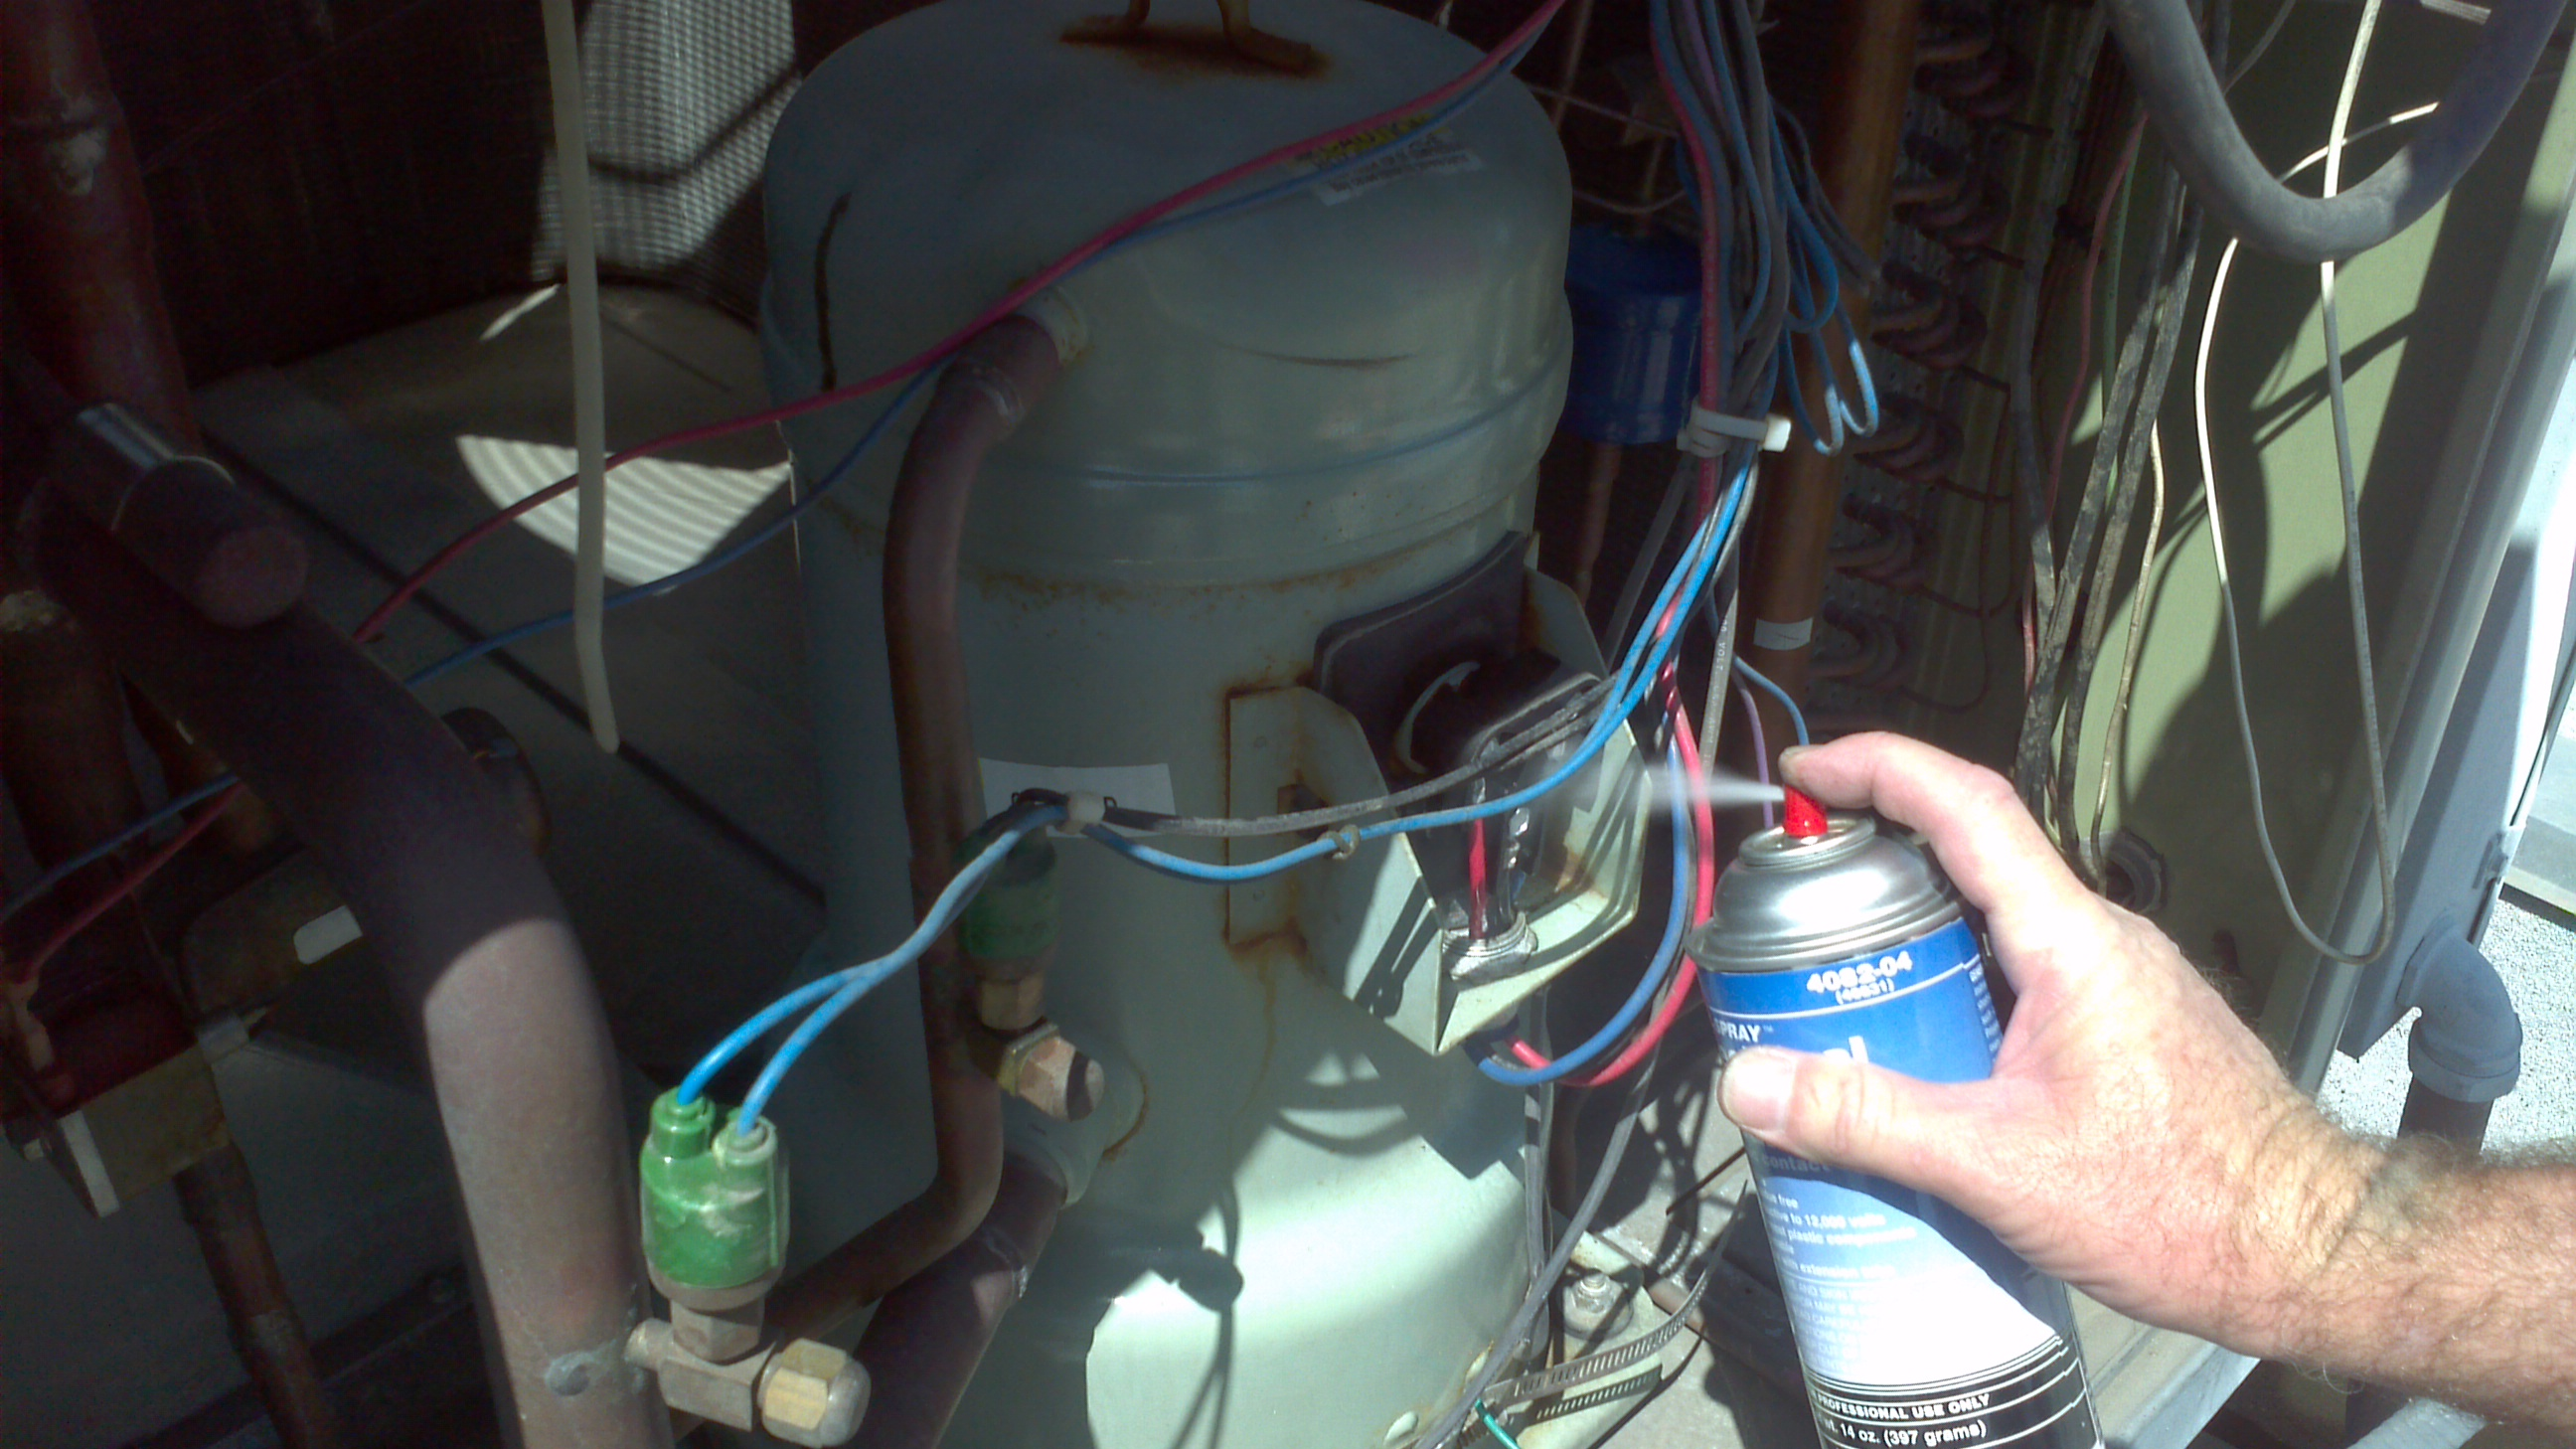 Apply contactor spray to extend electric connection endings